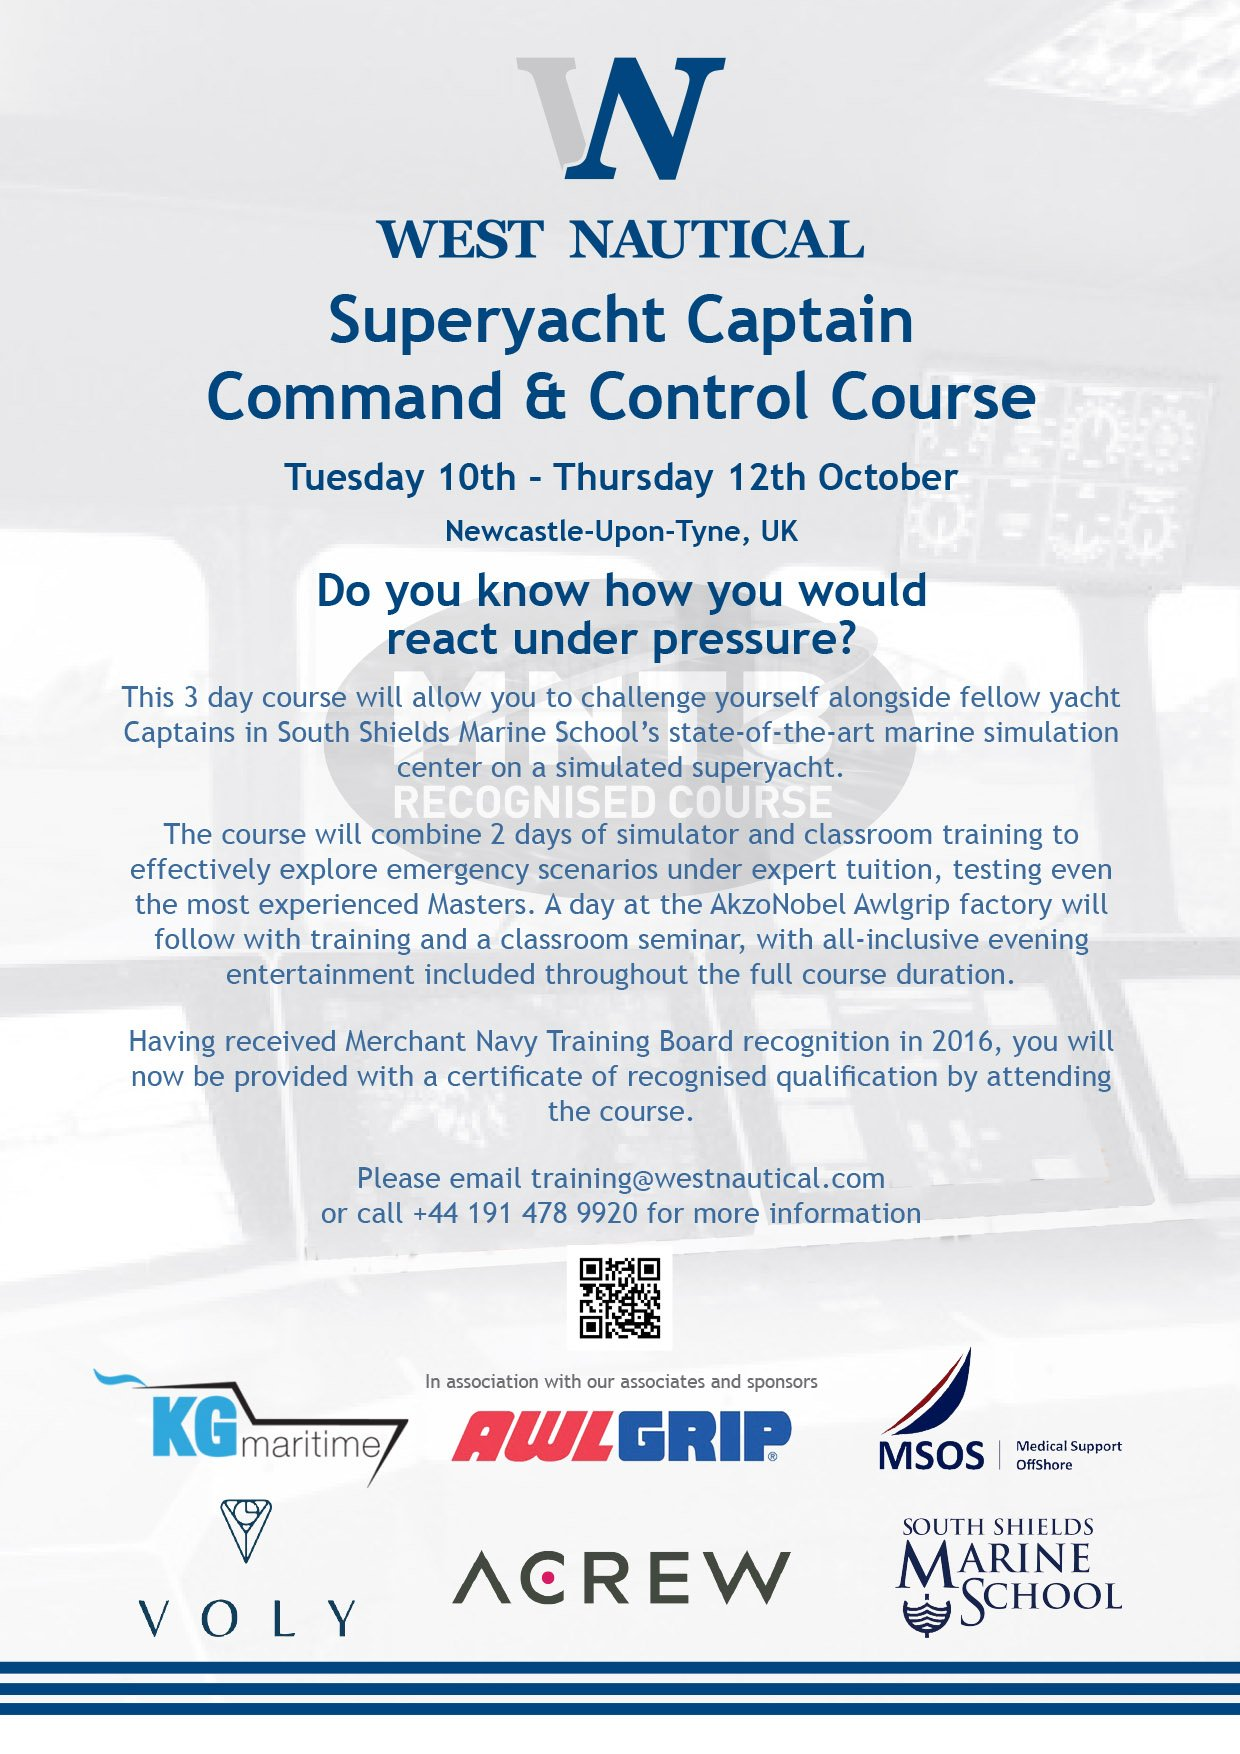 10% OFF CAPTAIN'S COMMAND AND CONTROL TRAINING COURSE 2017